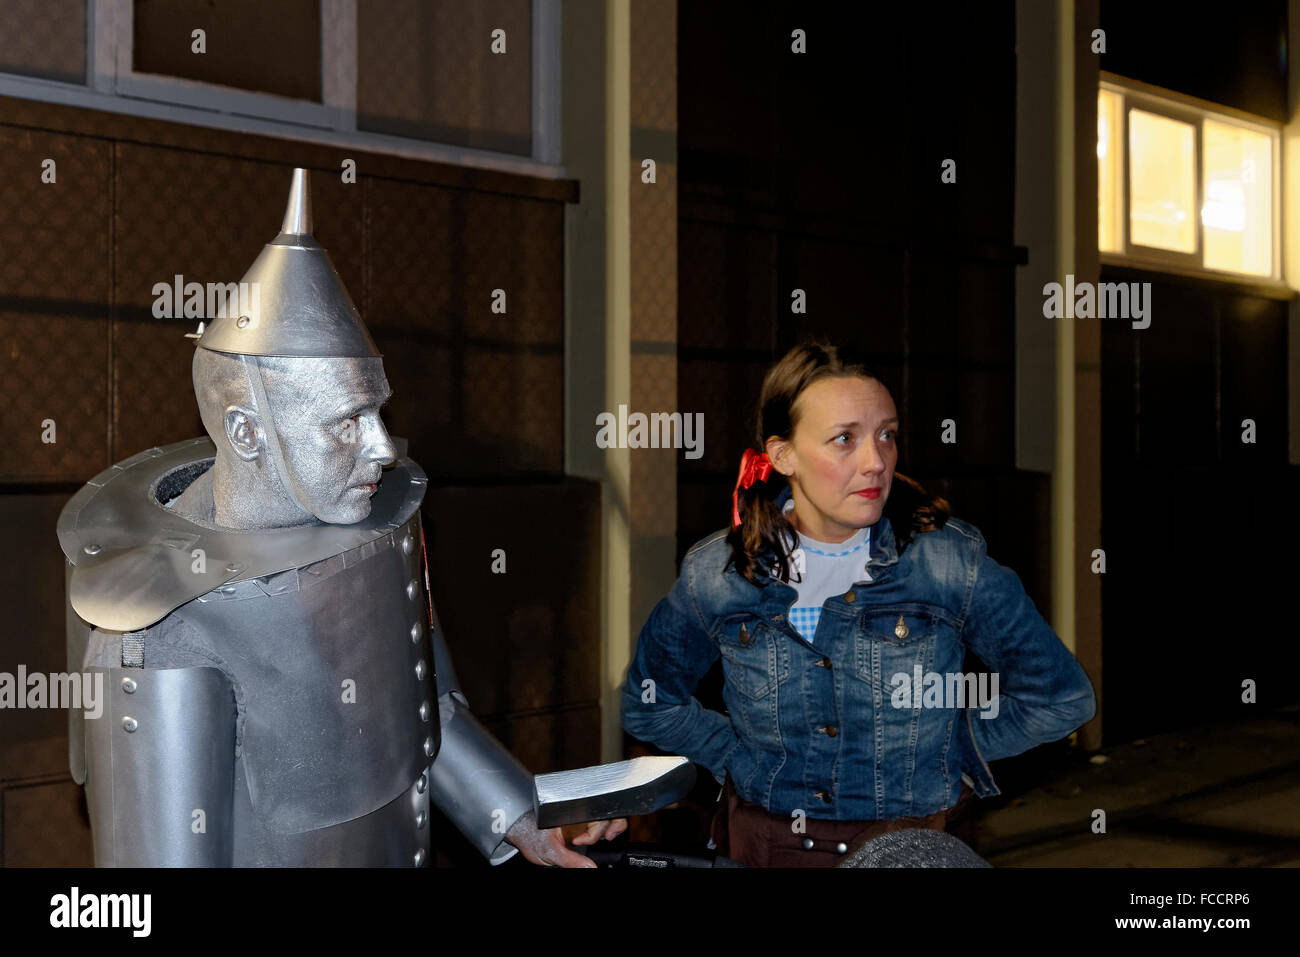 Dorothy and the Tin Man. Parade of Lost Souls Festival 2014, Commercial Drive neighbourhood, Vancouver, British - Stock Image